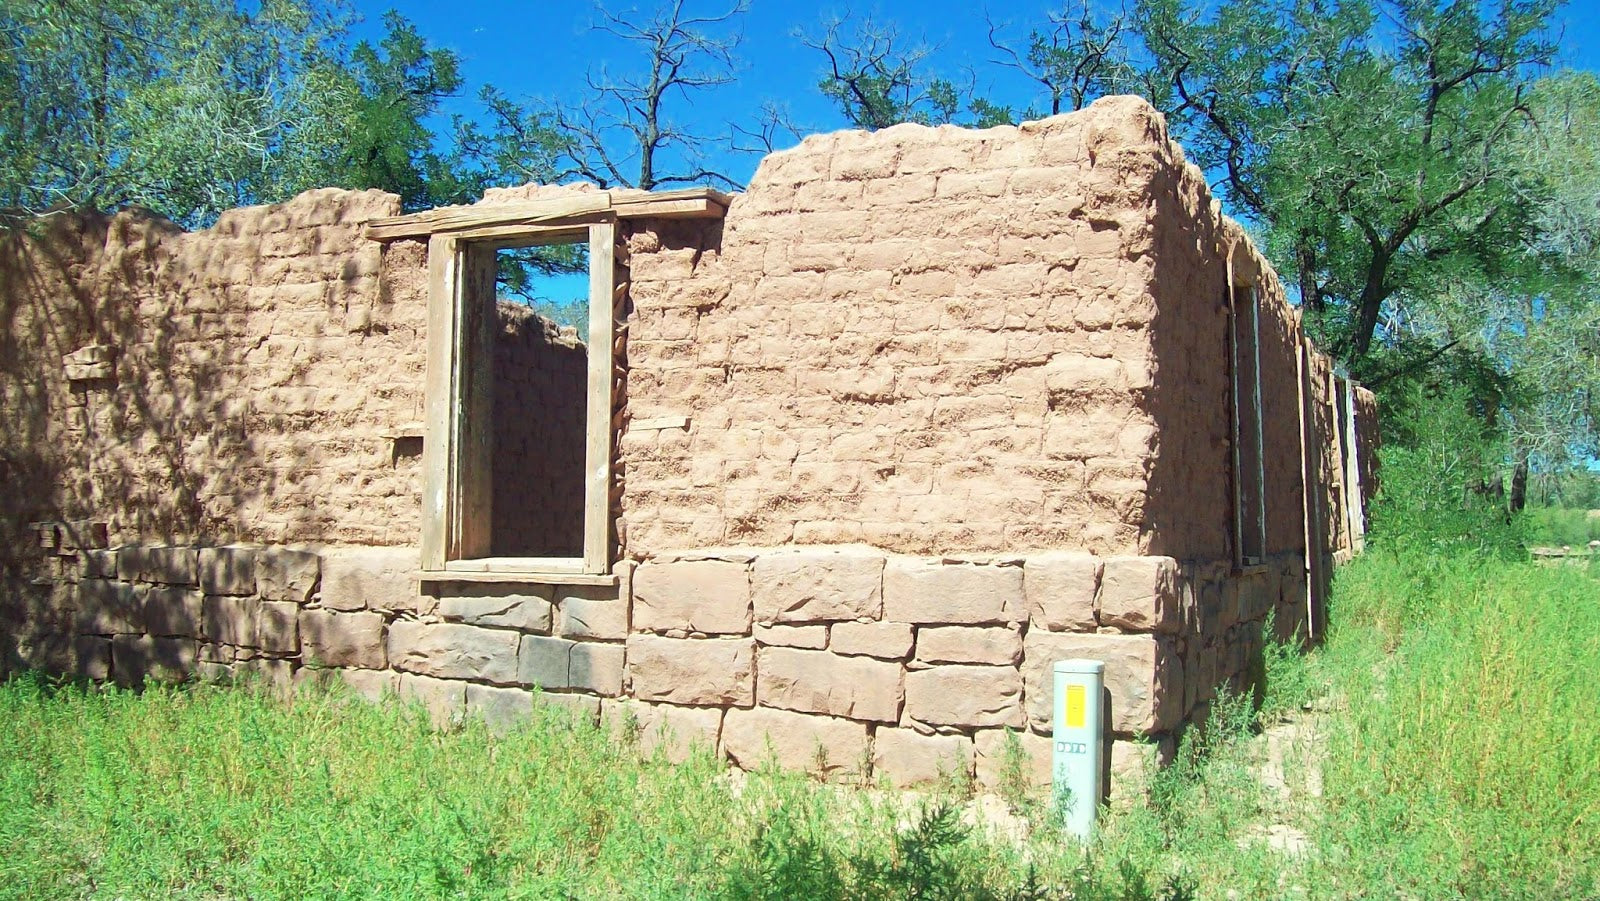 Trip to Zuni - Image of an Abandoned adobe